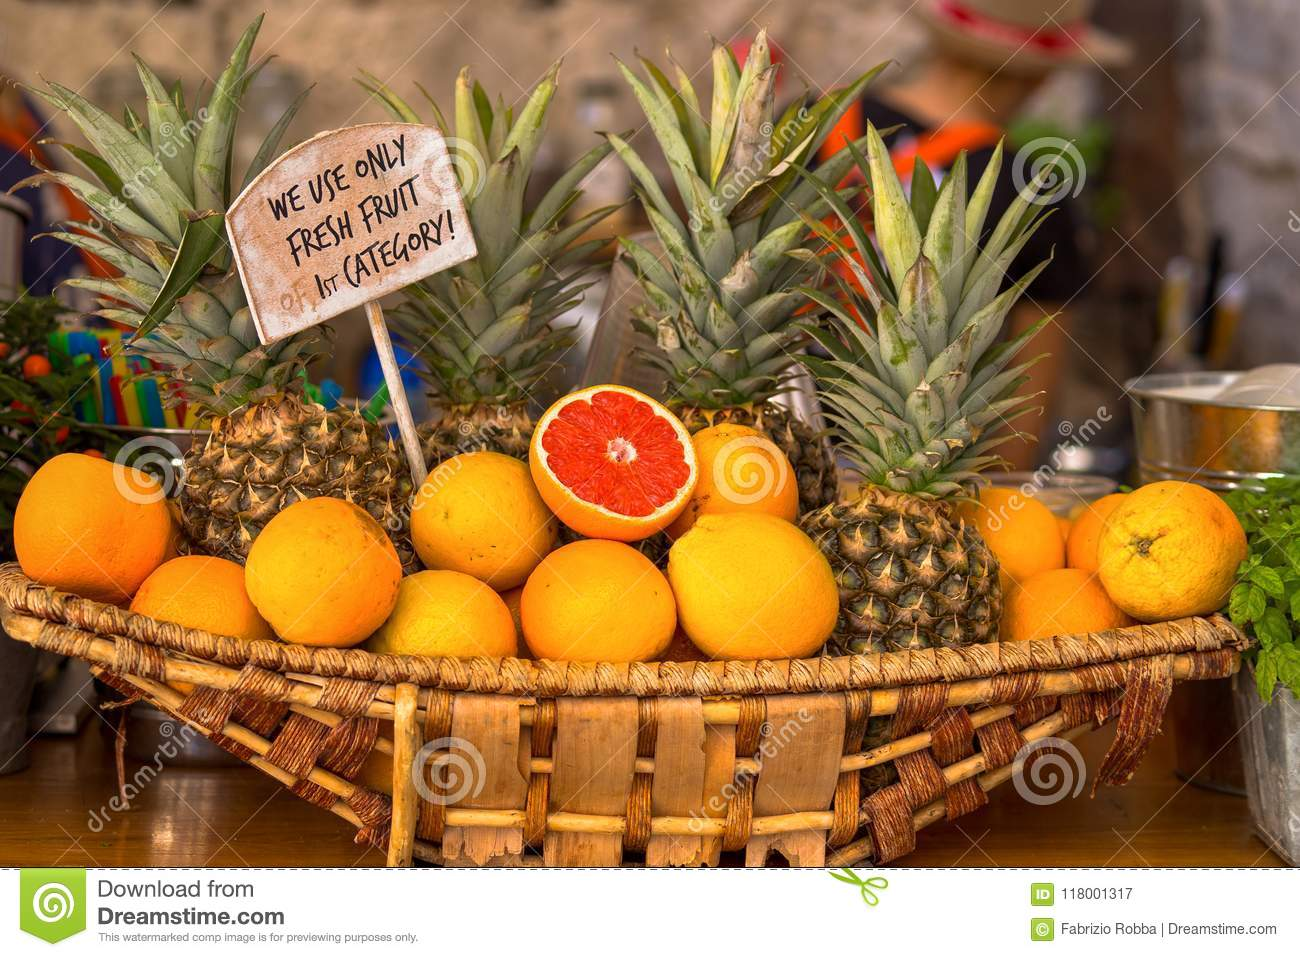 Wicker basket with oranges and pineapples.